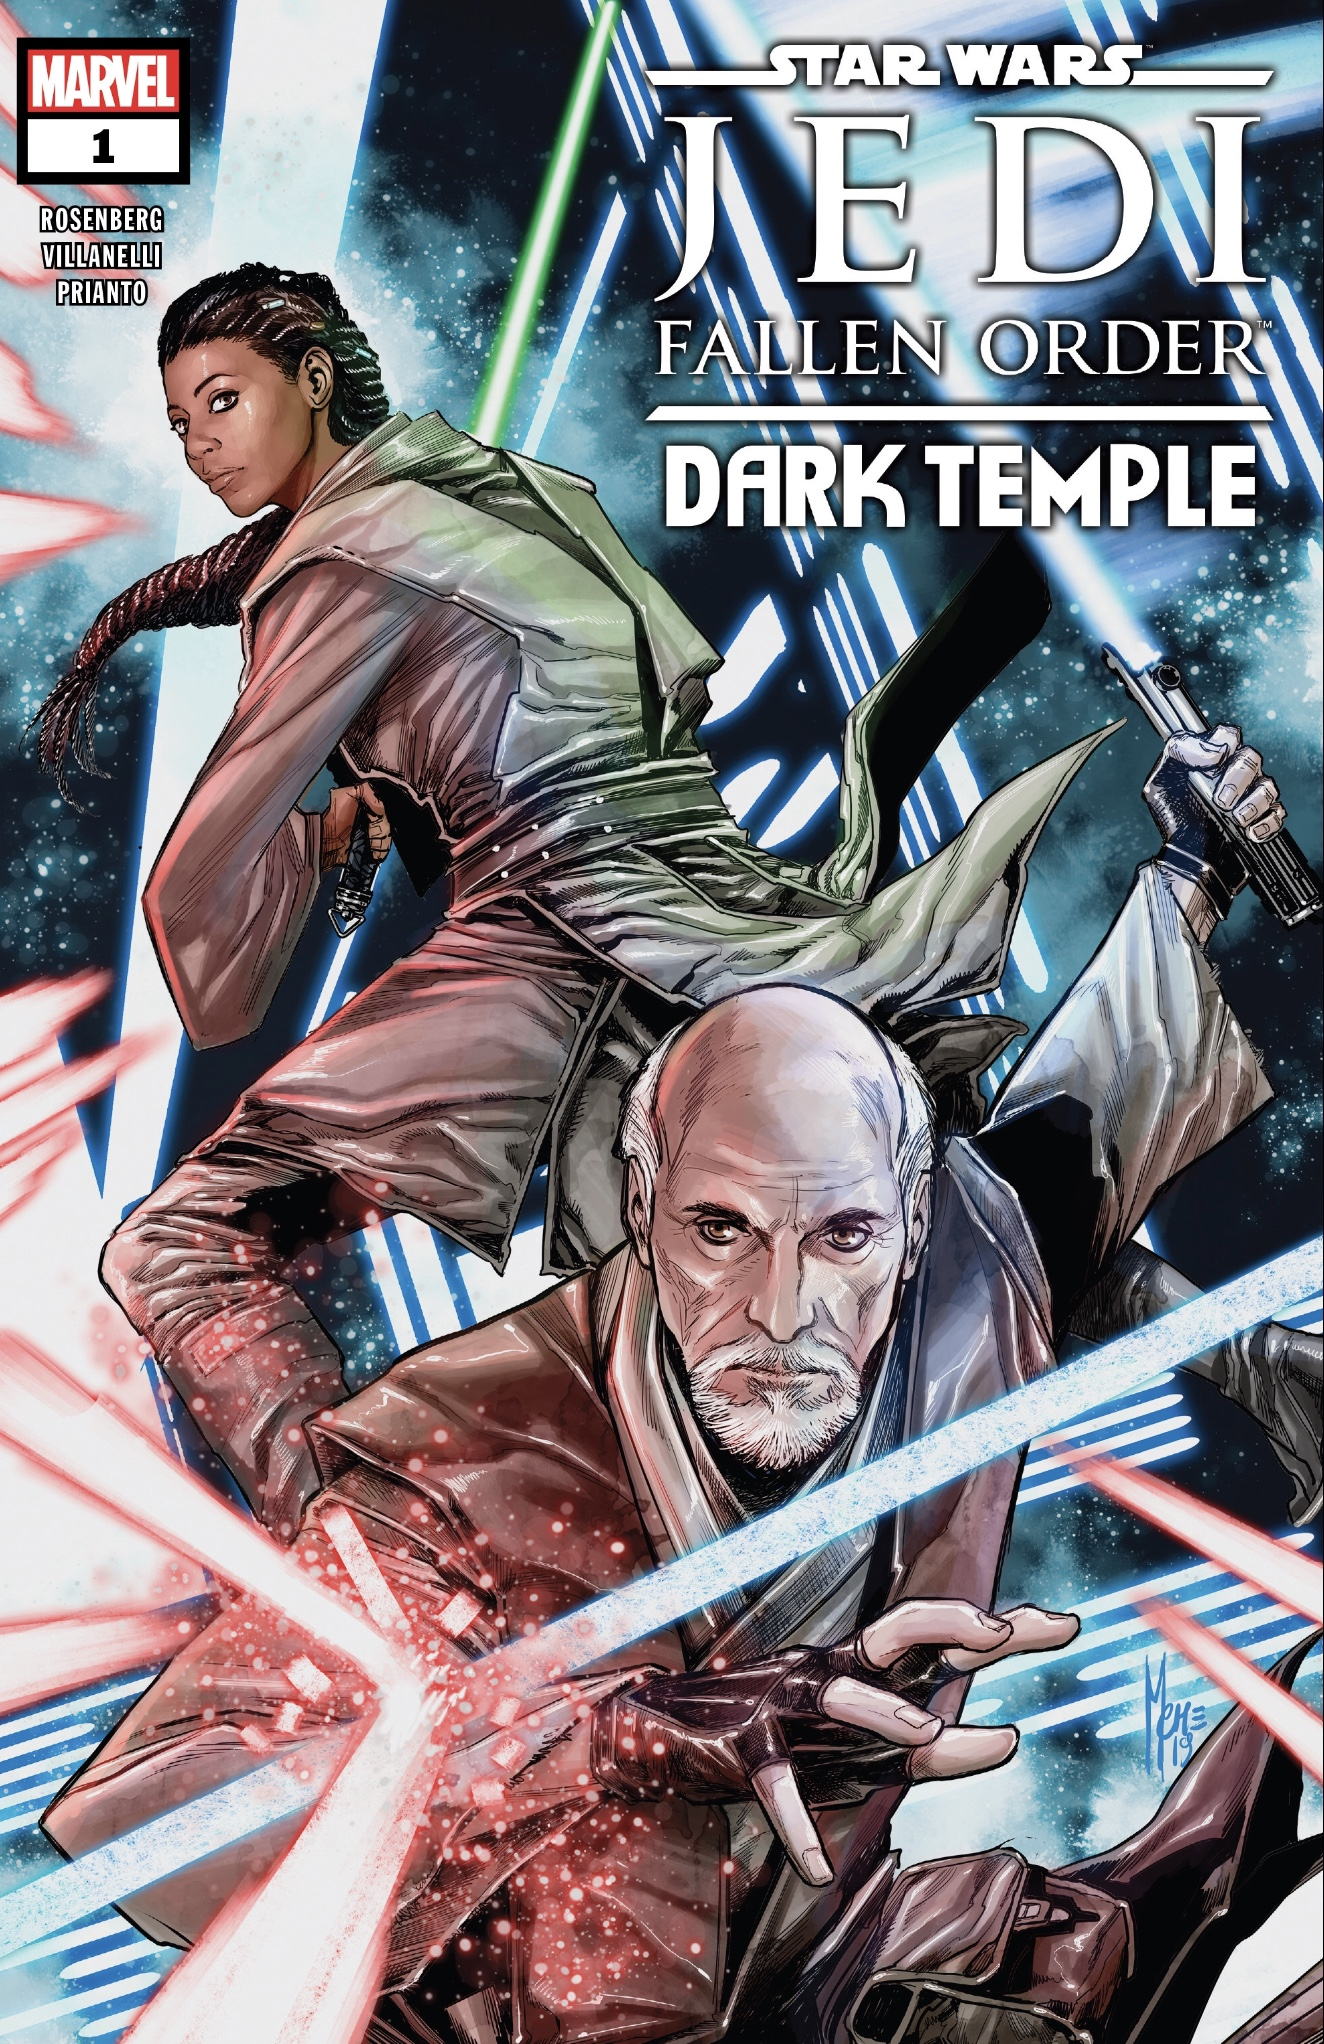 Review - An Apprentice Learns Restraint In Marvel's Jedi